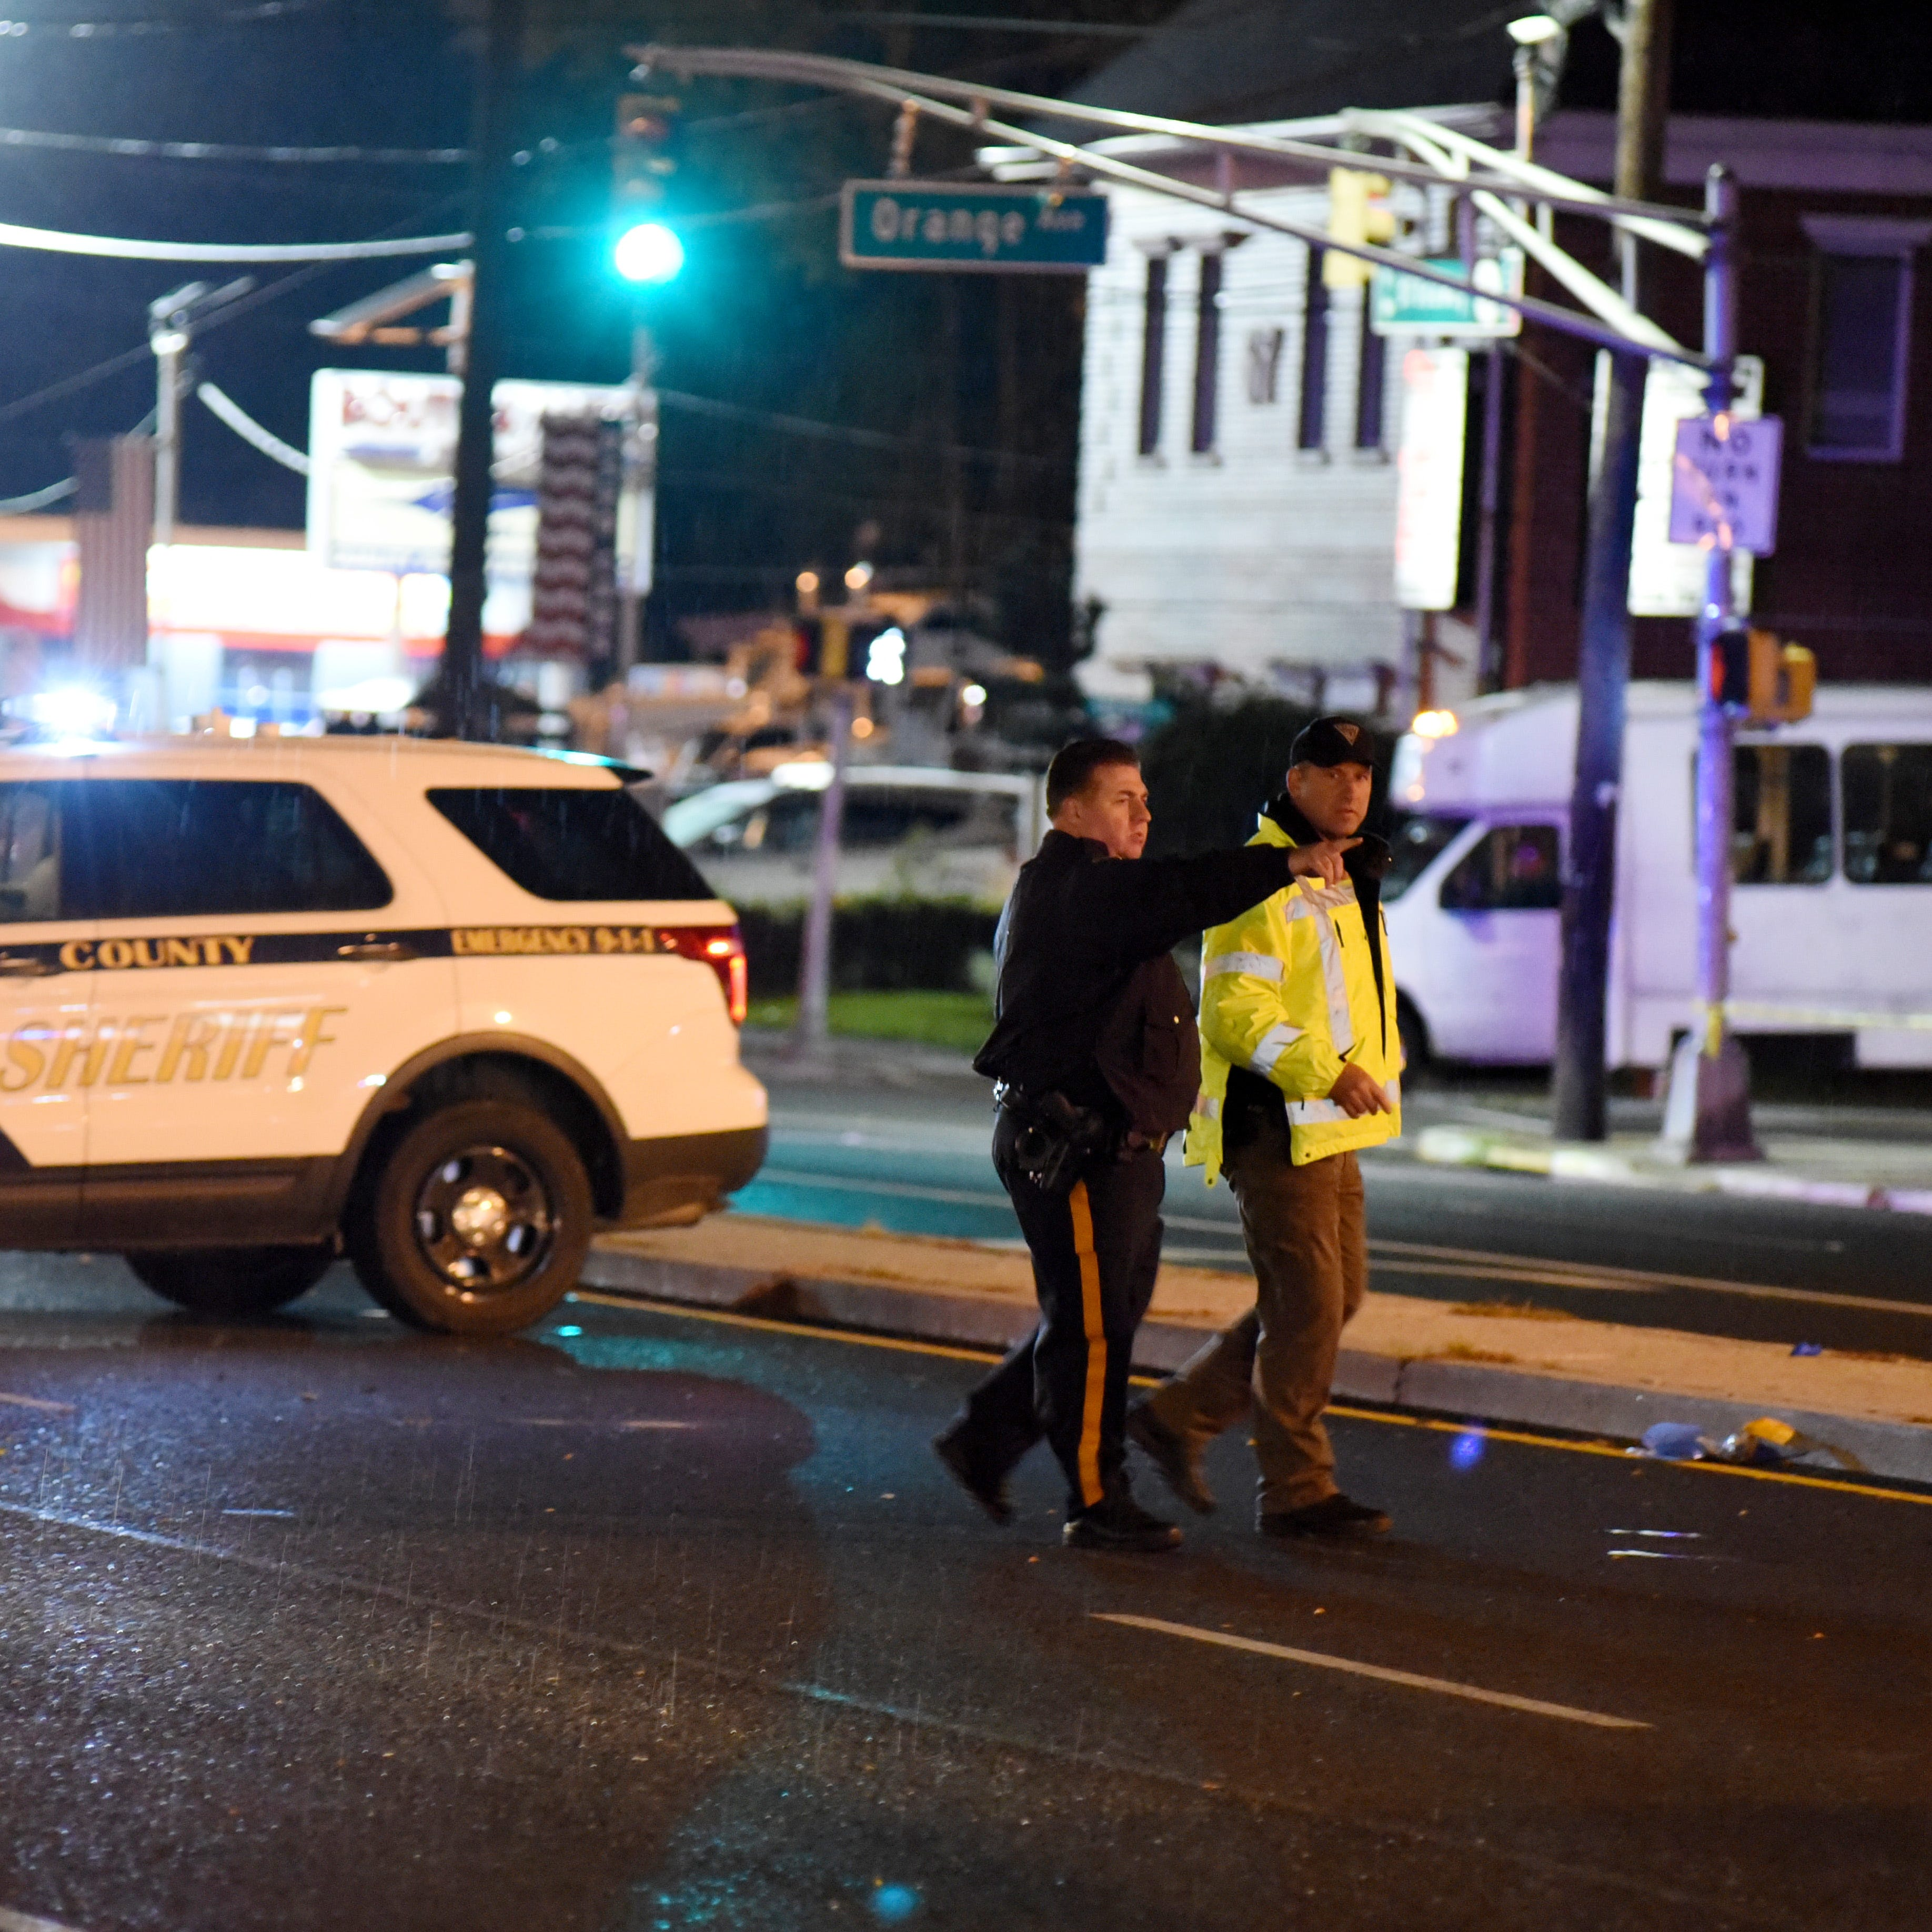 Police seek help identifying pedestrian killed in Elmwood Park on Broadway